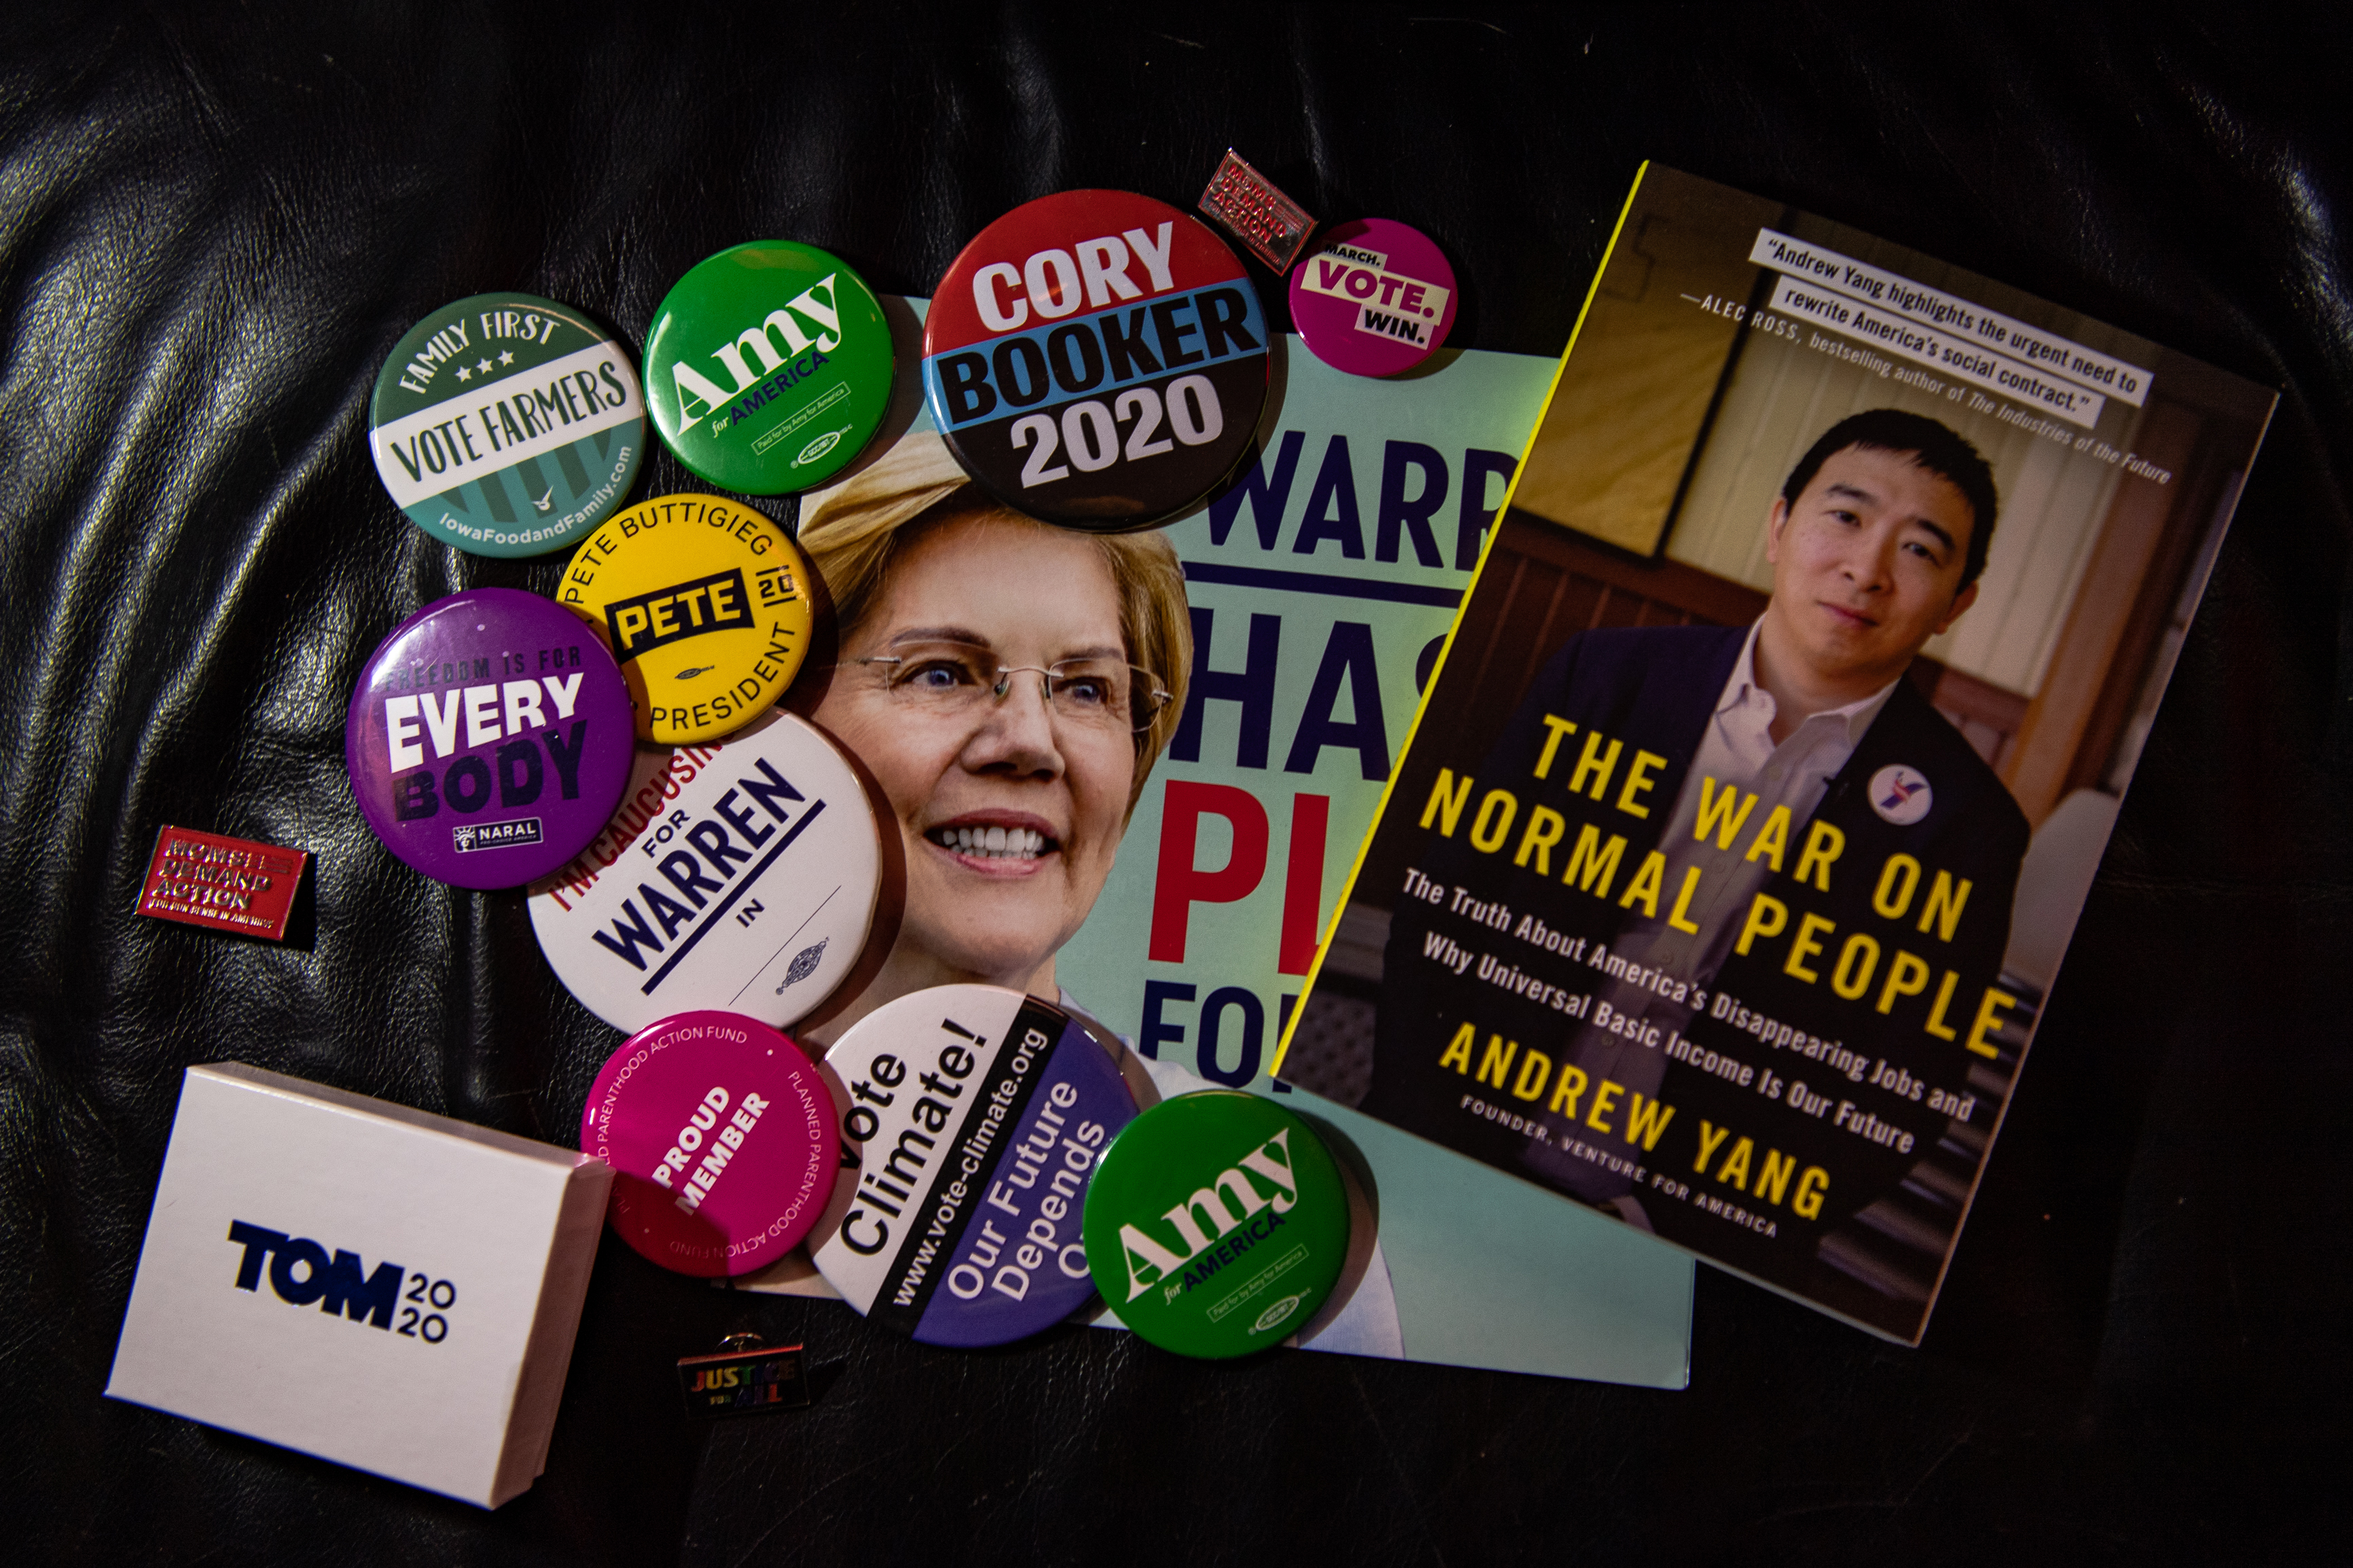 Tanya Keith's collection of Democratic buttons, pins, posters and books. MUST CREDIT: Washington Post photo by Salwan Georges